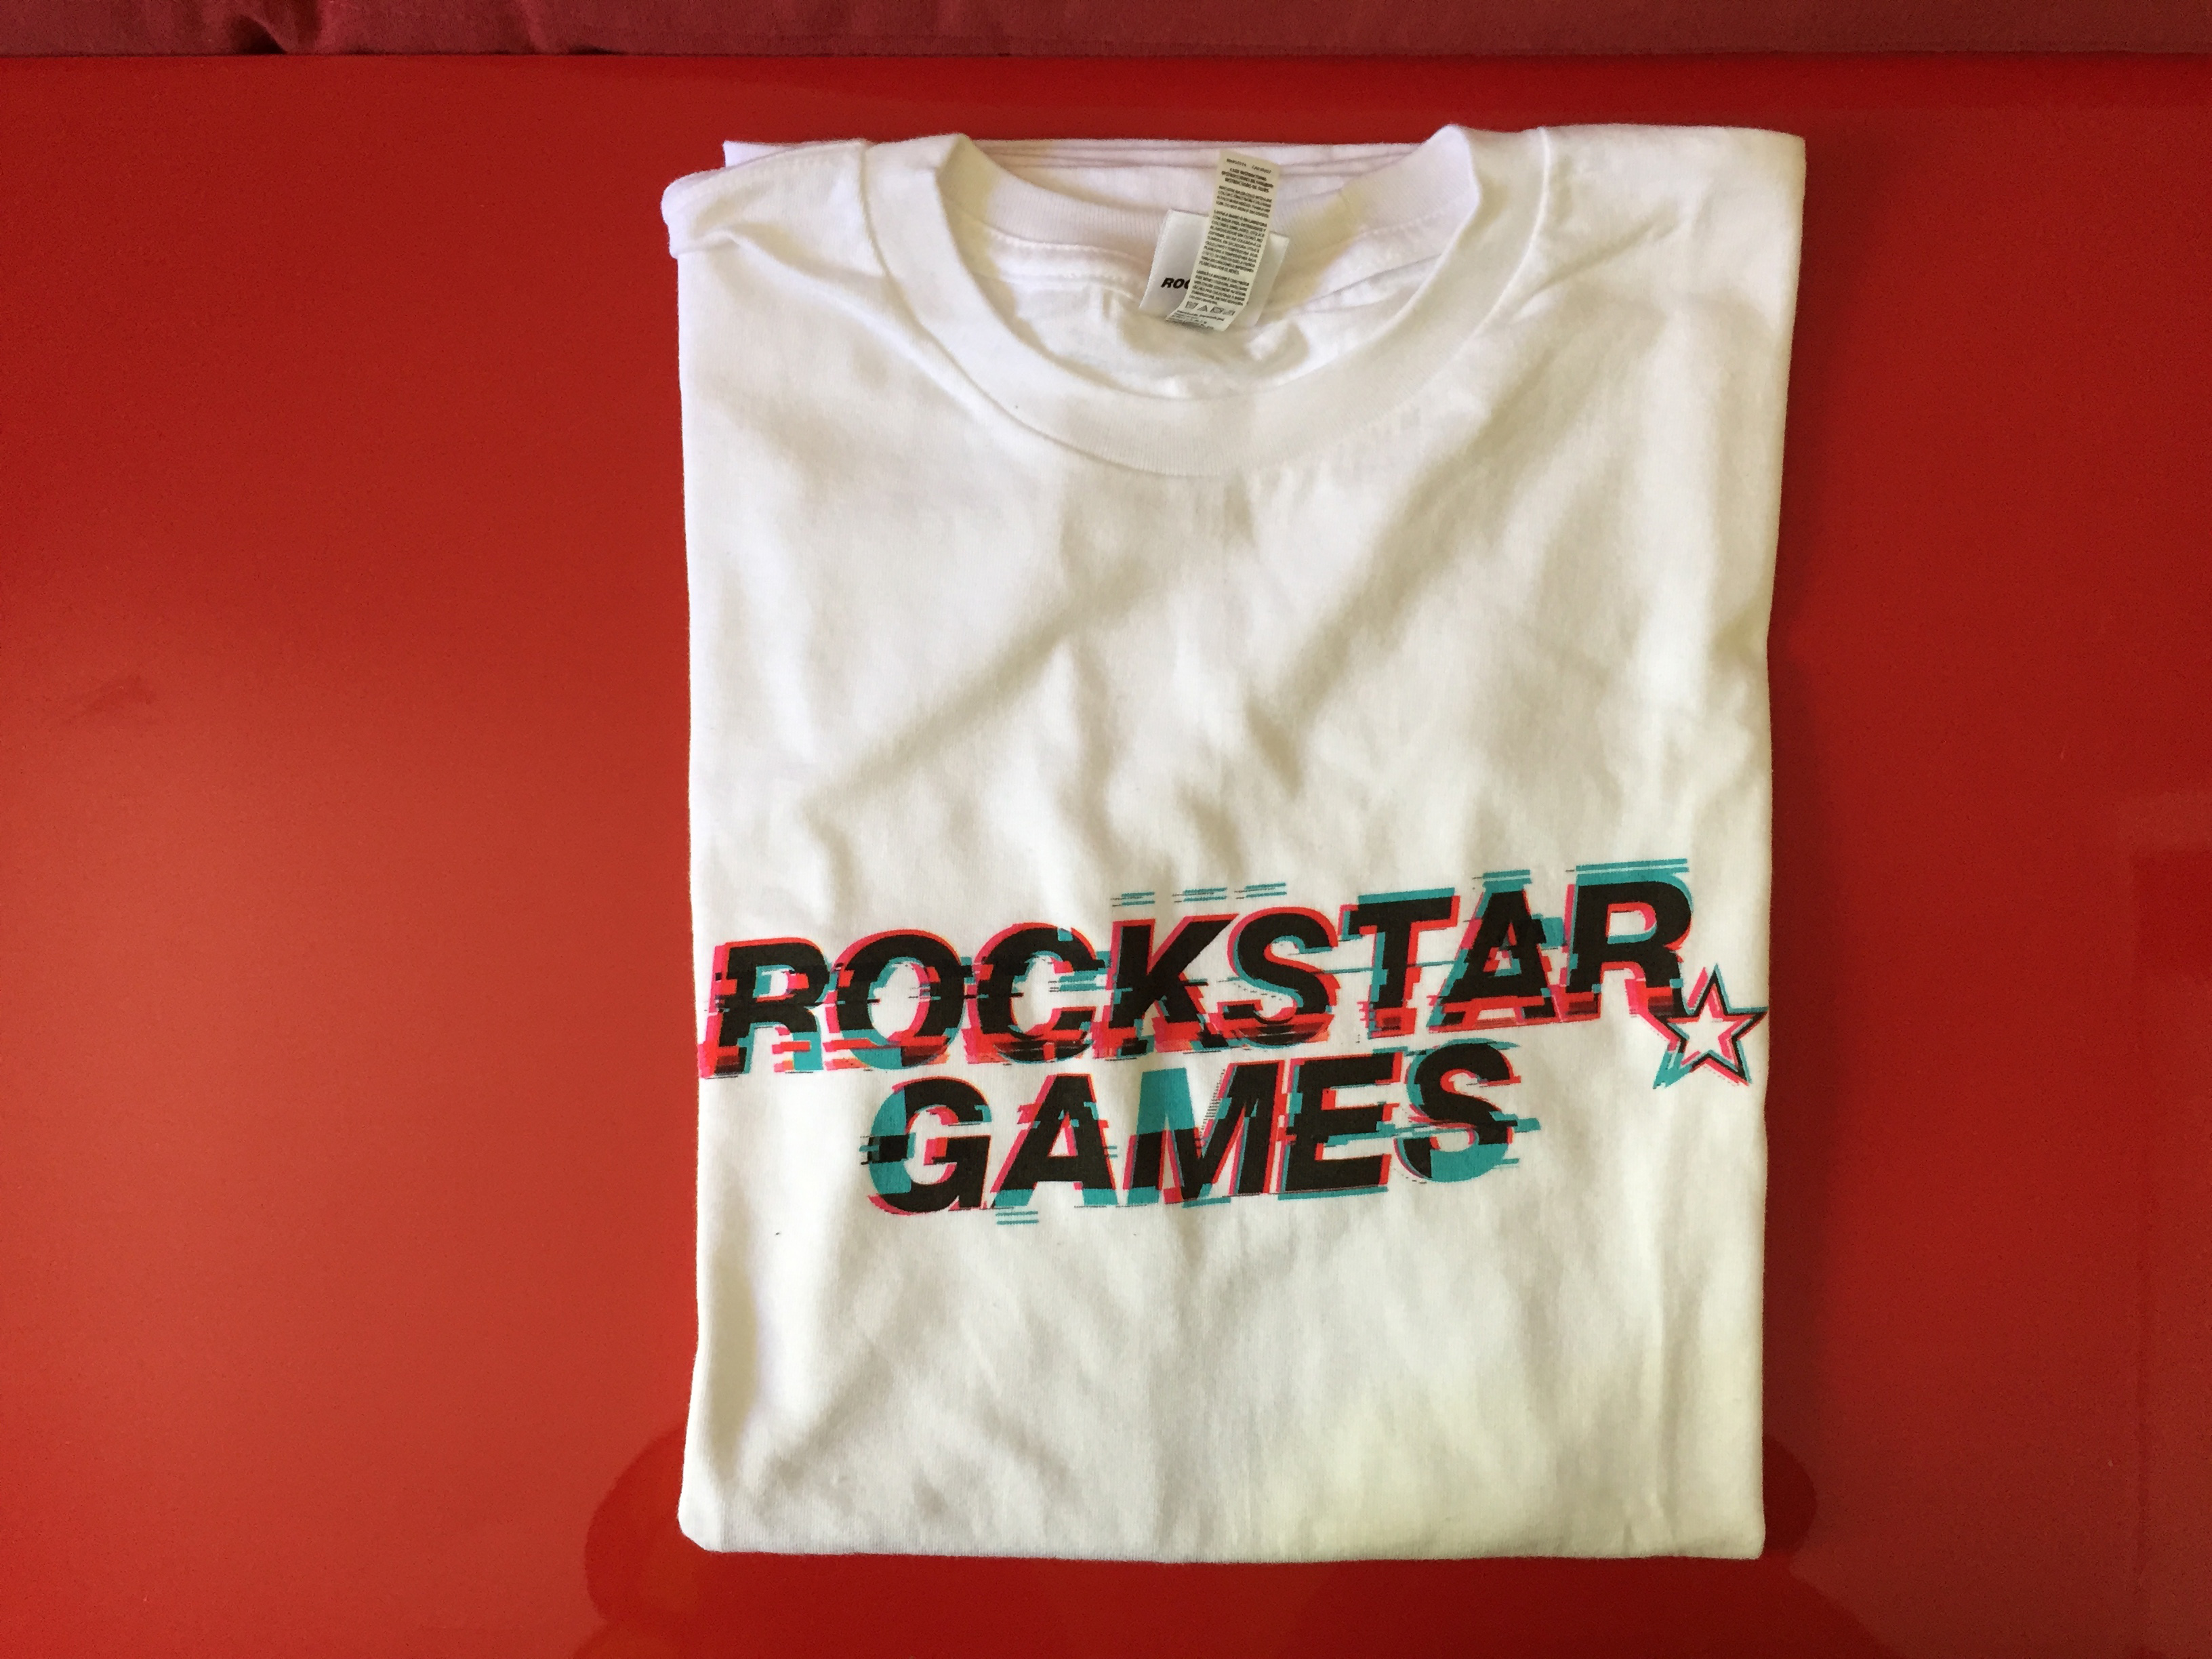 Rockstar Games - T-shirt Noise Tee